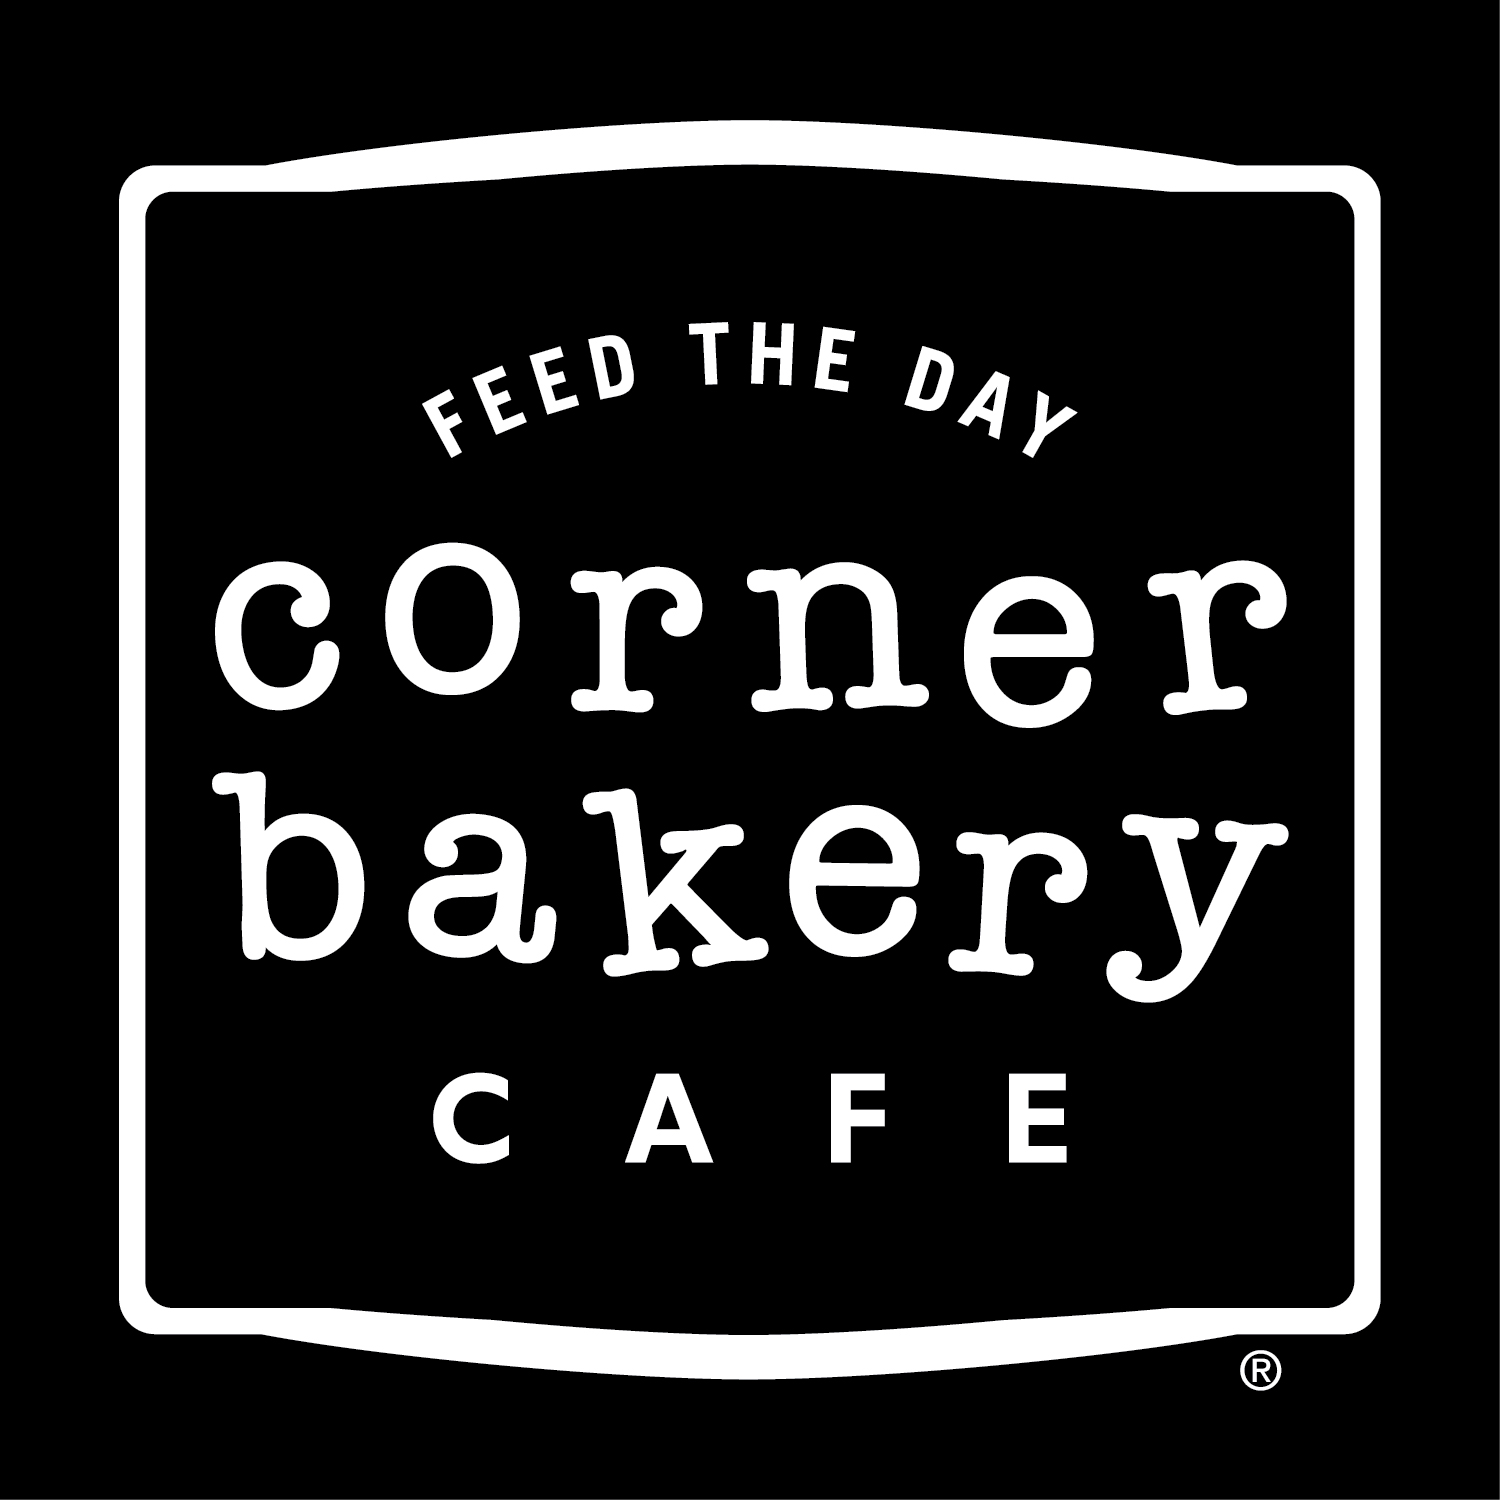 Corner Bakery Cafe: Buy One, Get One Free Coupon